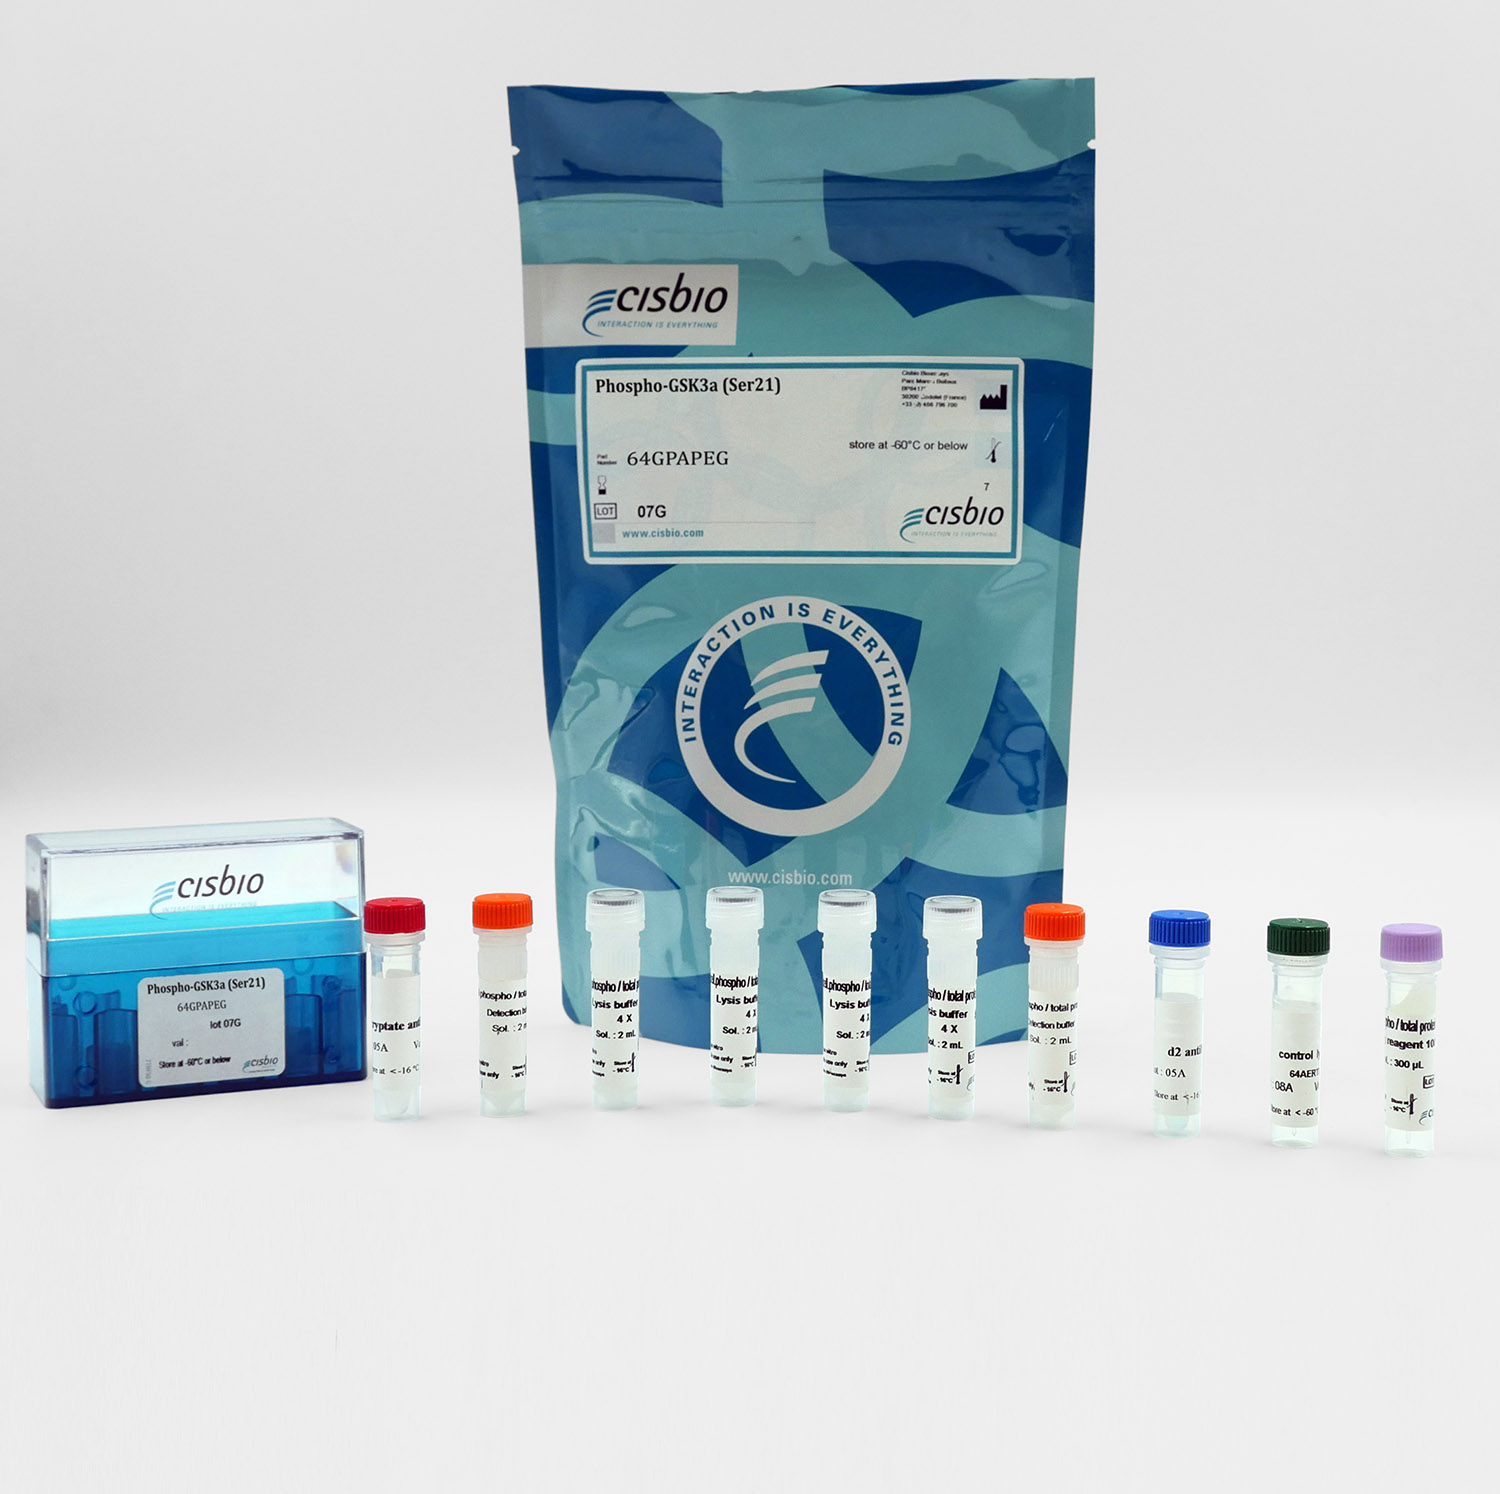 Phospho-GSK3 alpha (Ser21) cellular kit I Cisbio